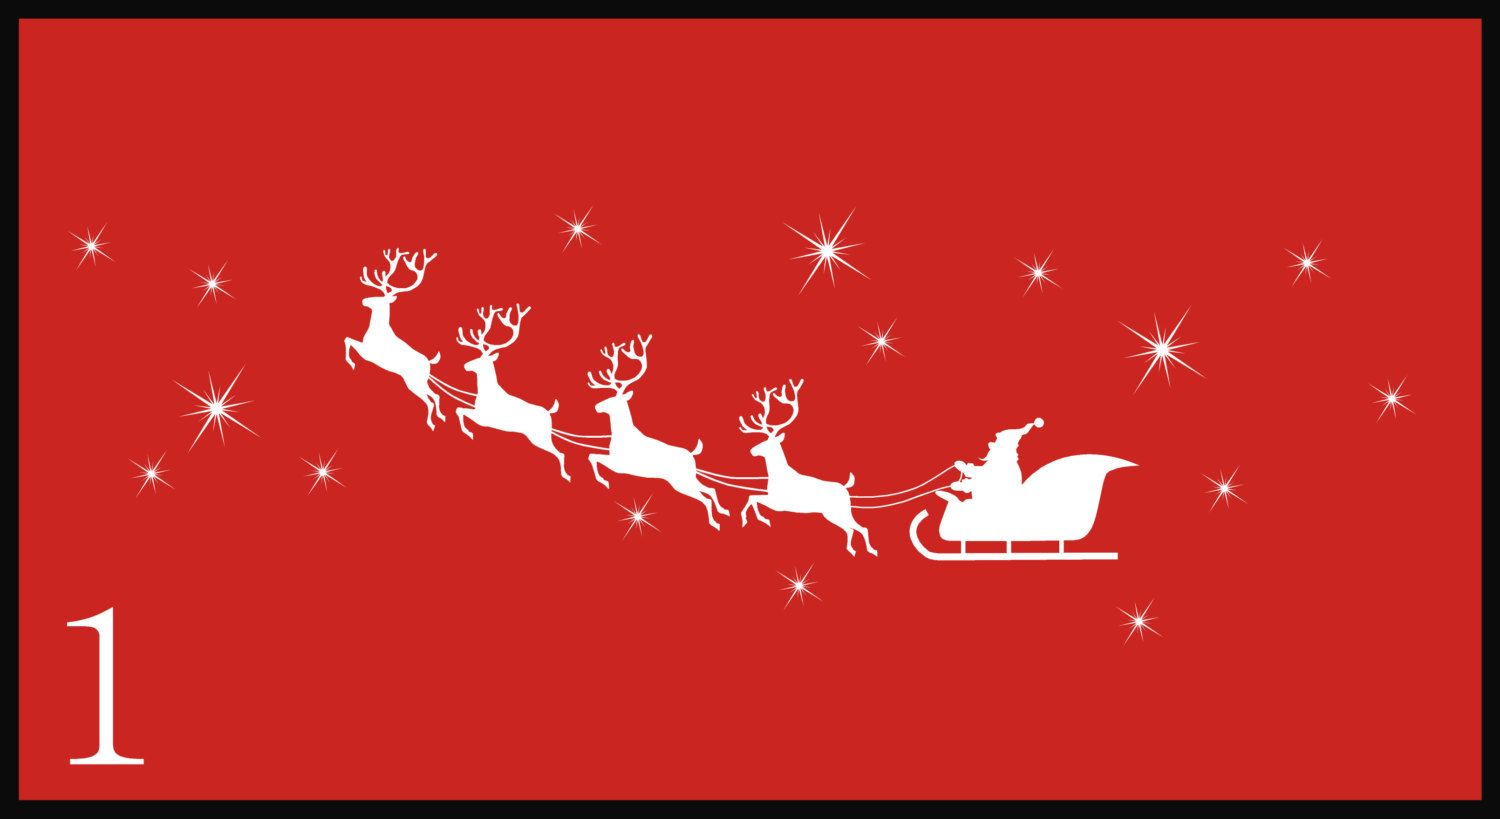 Santa Sleigh with Reindeer Wall Decal, Christmas Wall Decal, Holiday Wall Decal by EyeCatcherDecals on Etsy